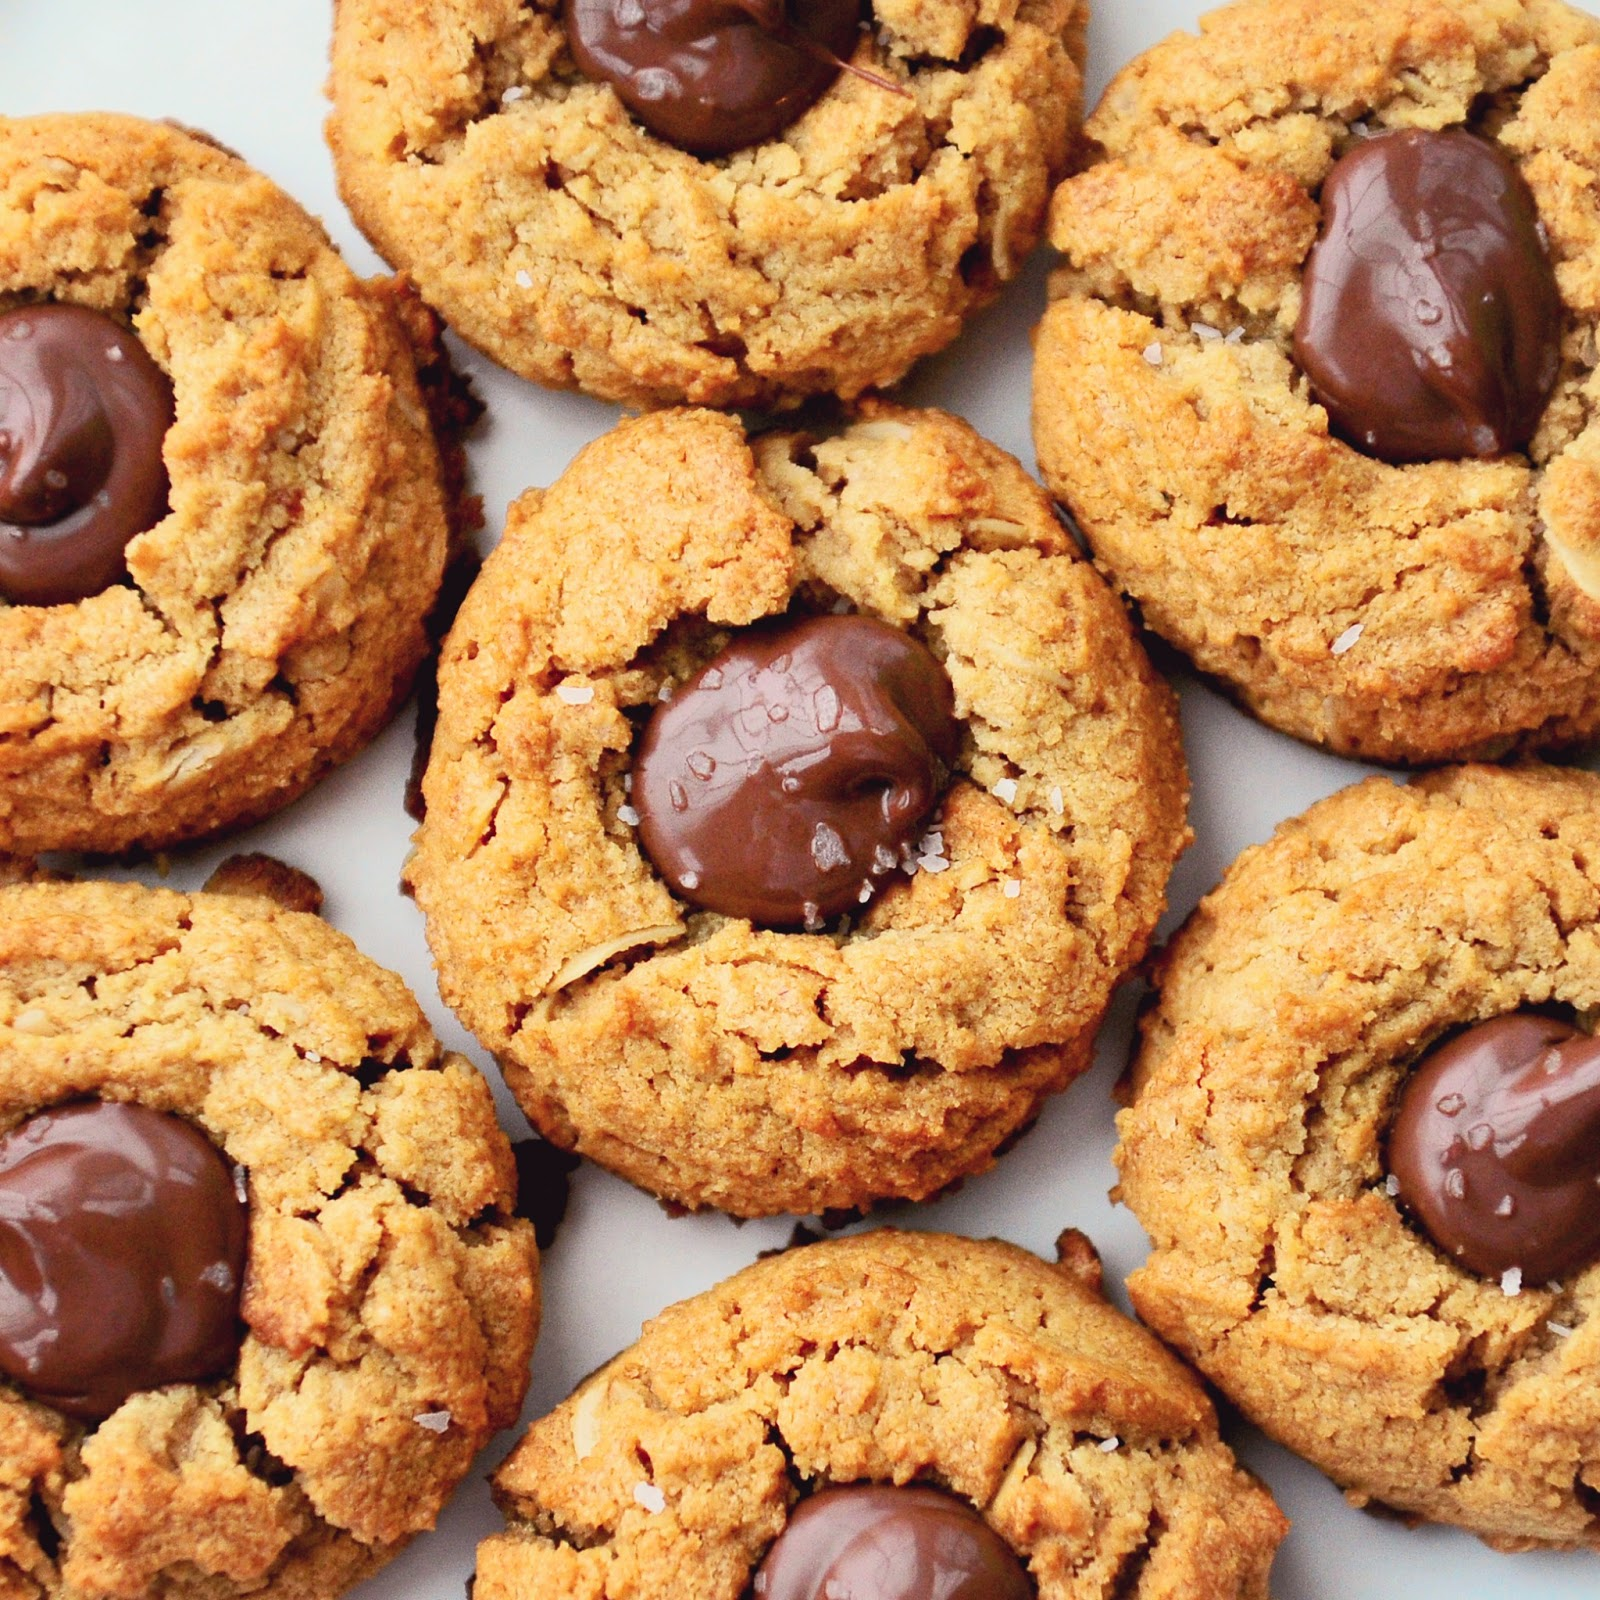 Simply Gourmet: Peanut Butter And Nutella Cookies, Gluten Free